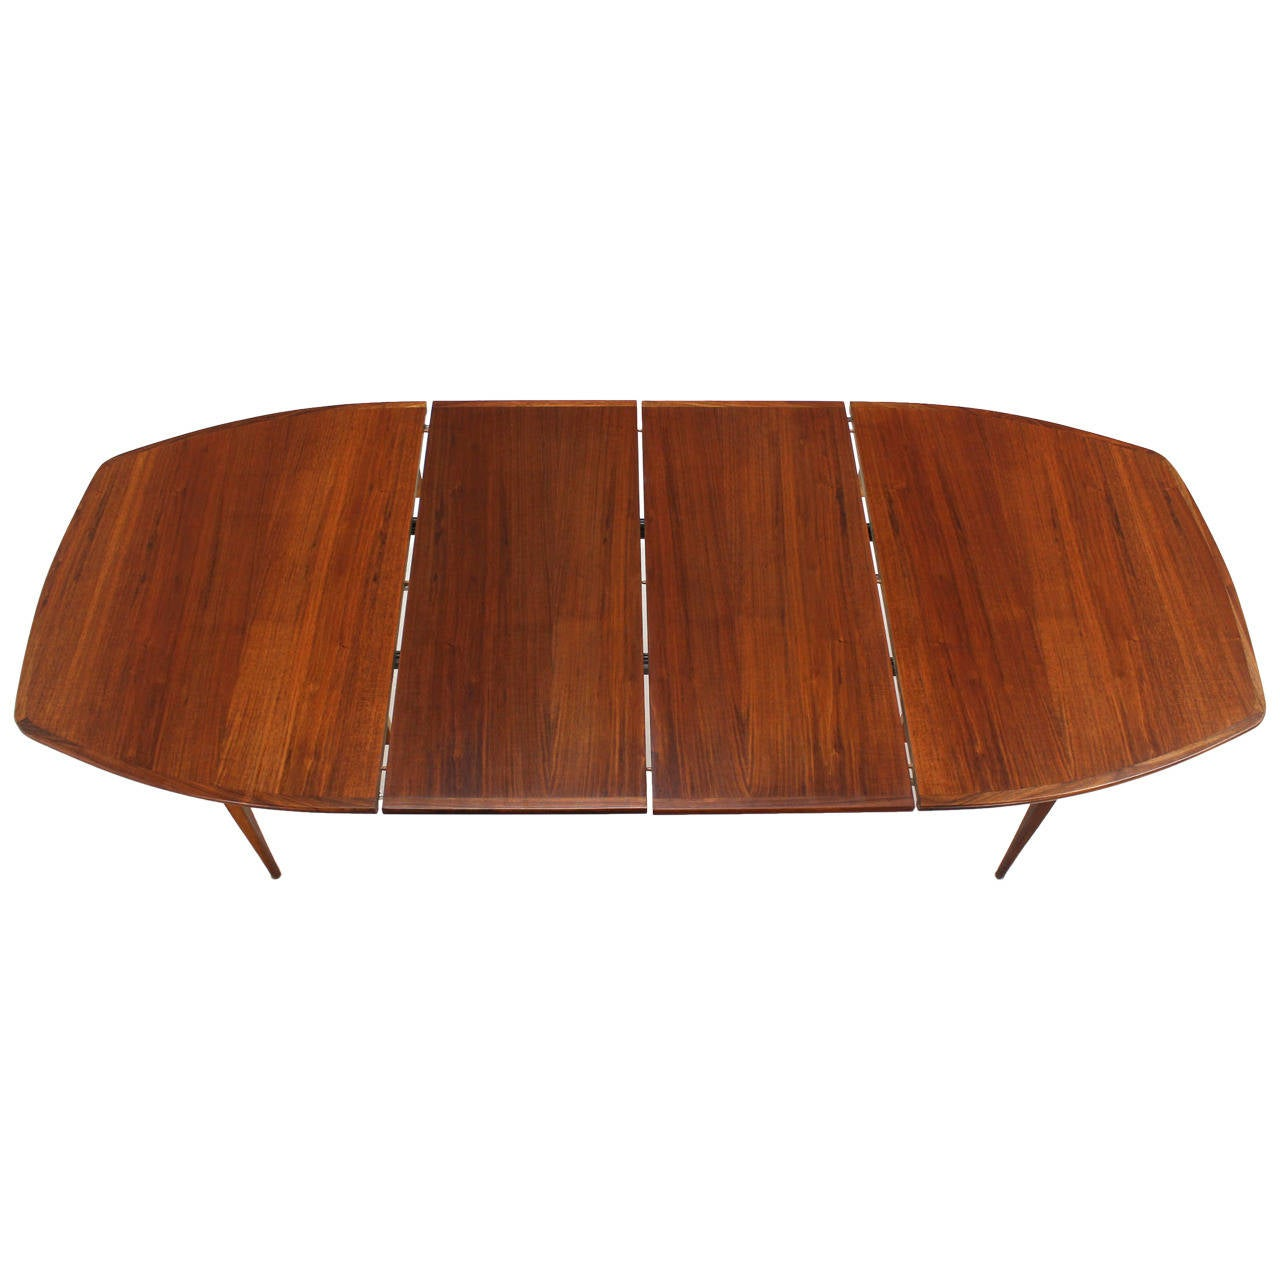 Oiled Walnut Dining Table with Two Extension Board Leaves For Sale